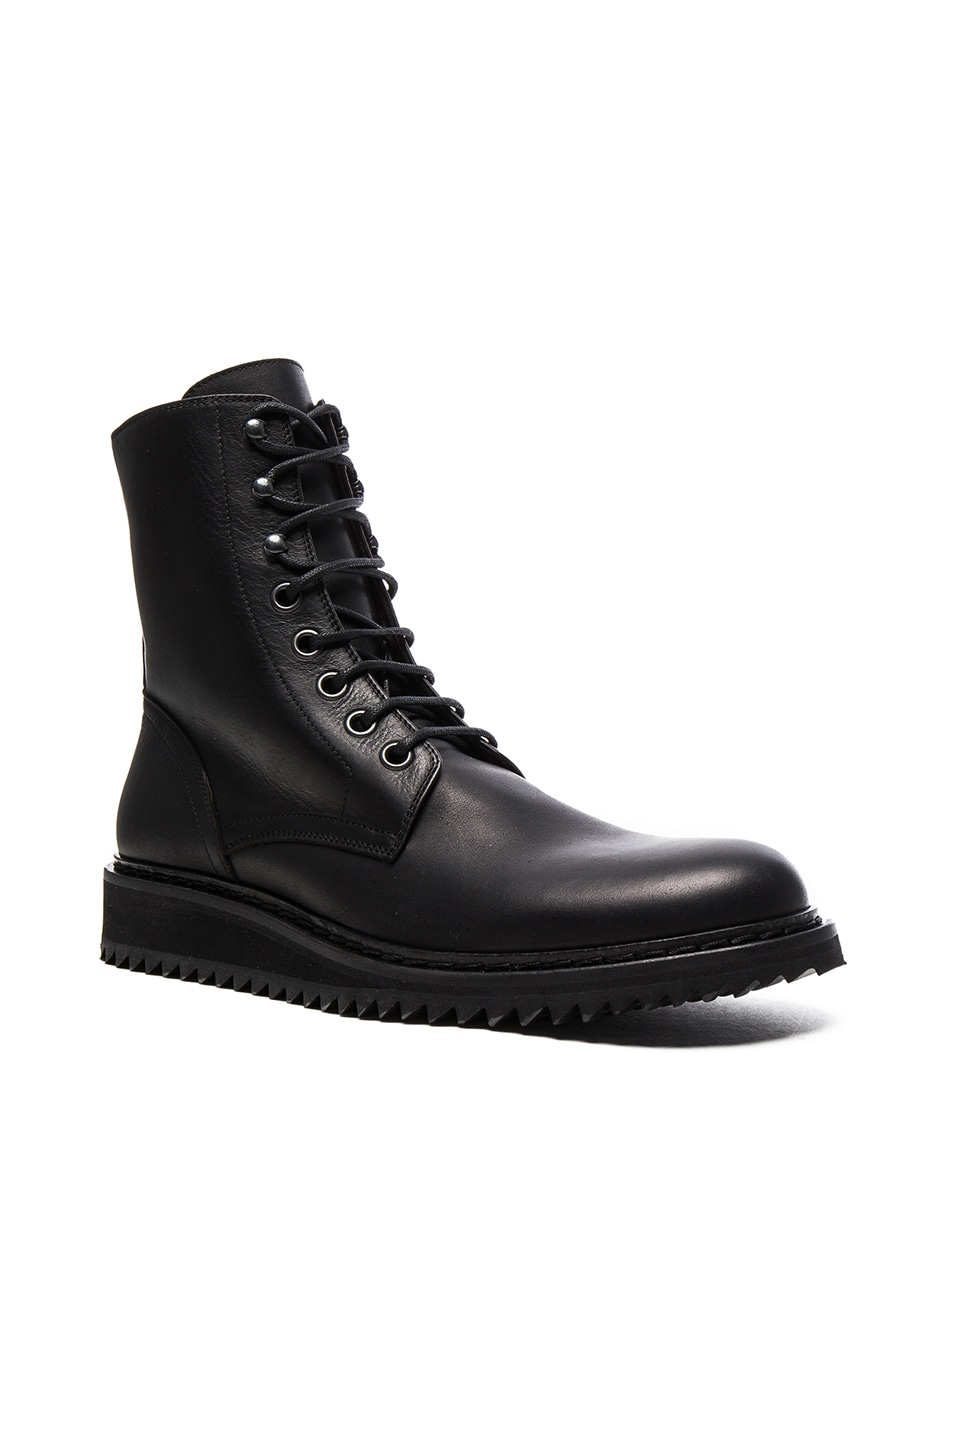 ANN DEMEULEMEESTER Leather Lace-Up Boots 0ZHKQ9